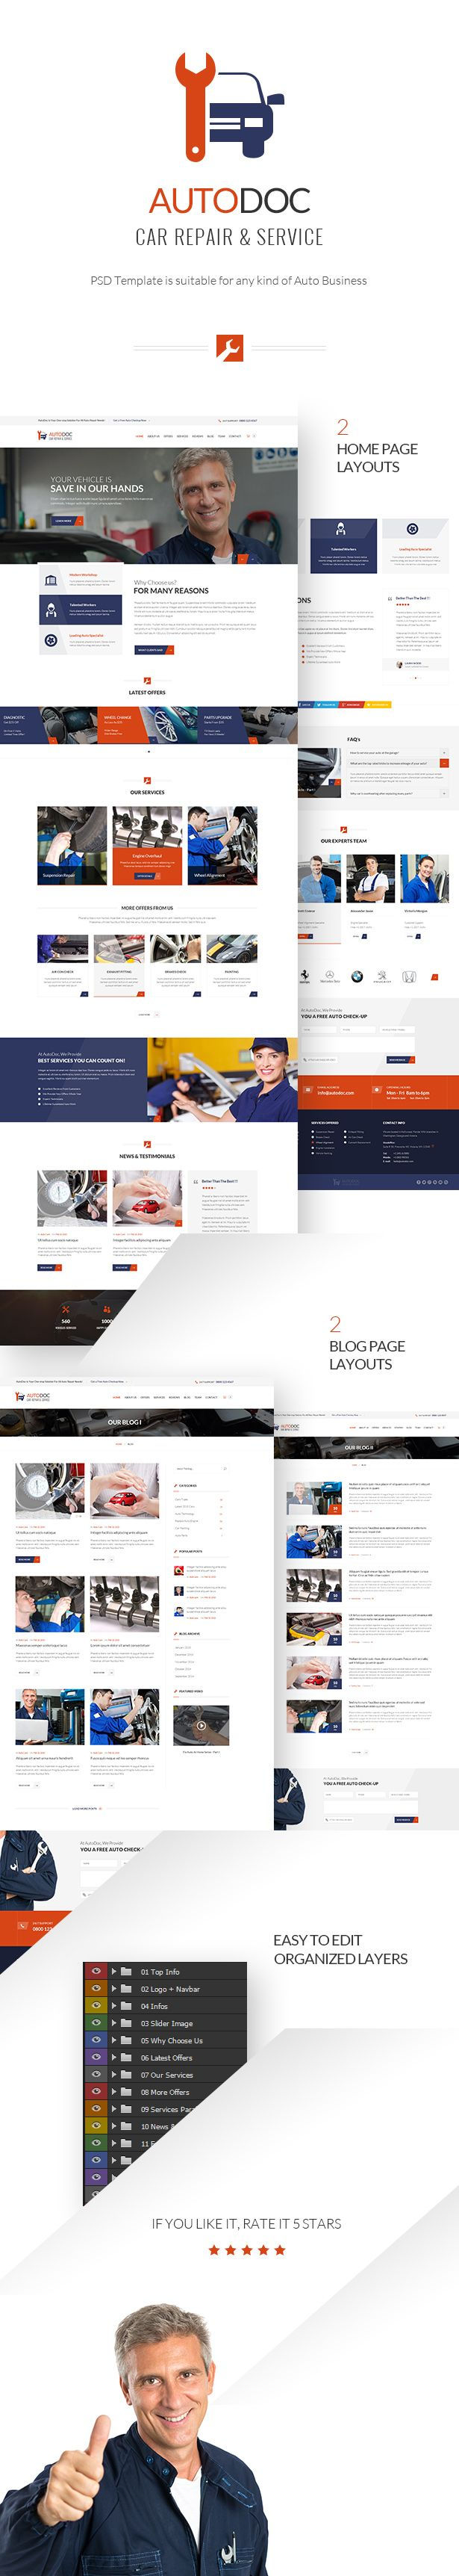 AutoDoc HTML Template is suitable for any kind of Auto Business like Auto Repair Services, Car Wash, Auto Repair Shop, Garages or Mechanical Workshops.